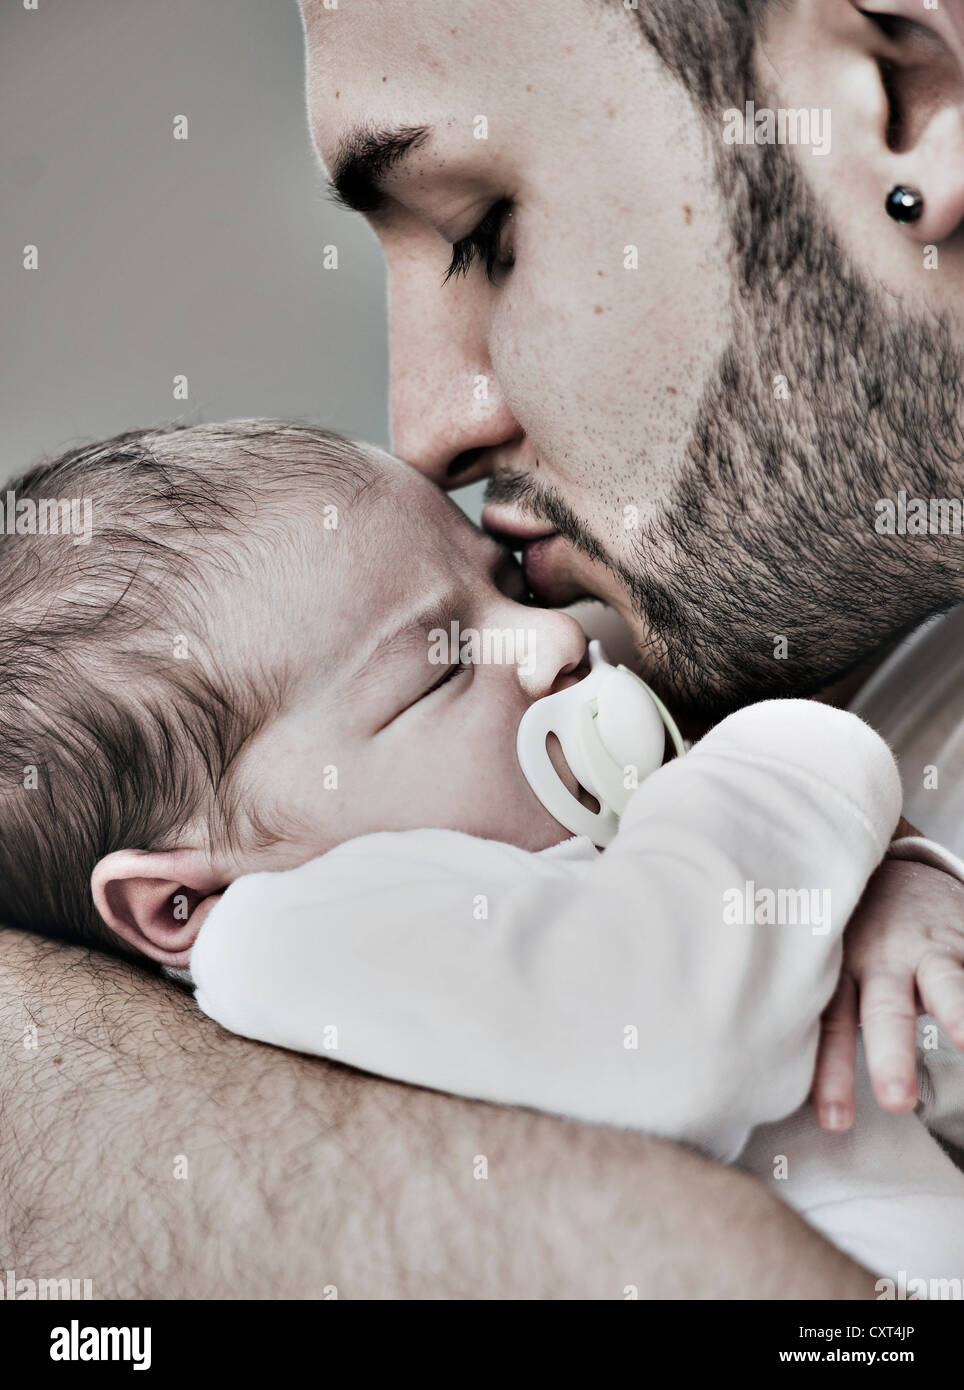 Father lovingly holding his newborn baby in his arms - Stock Image